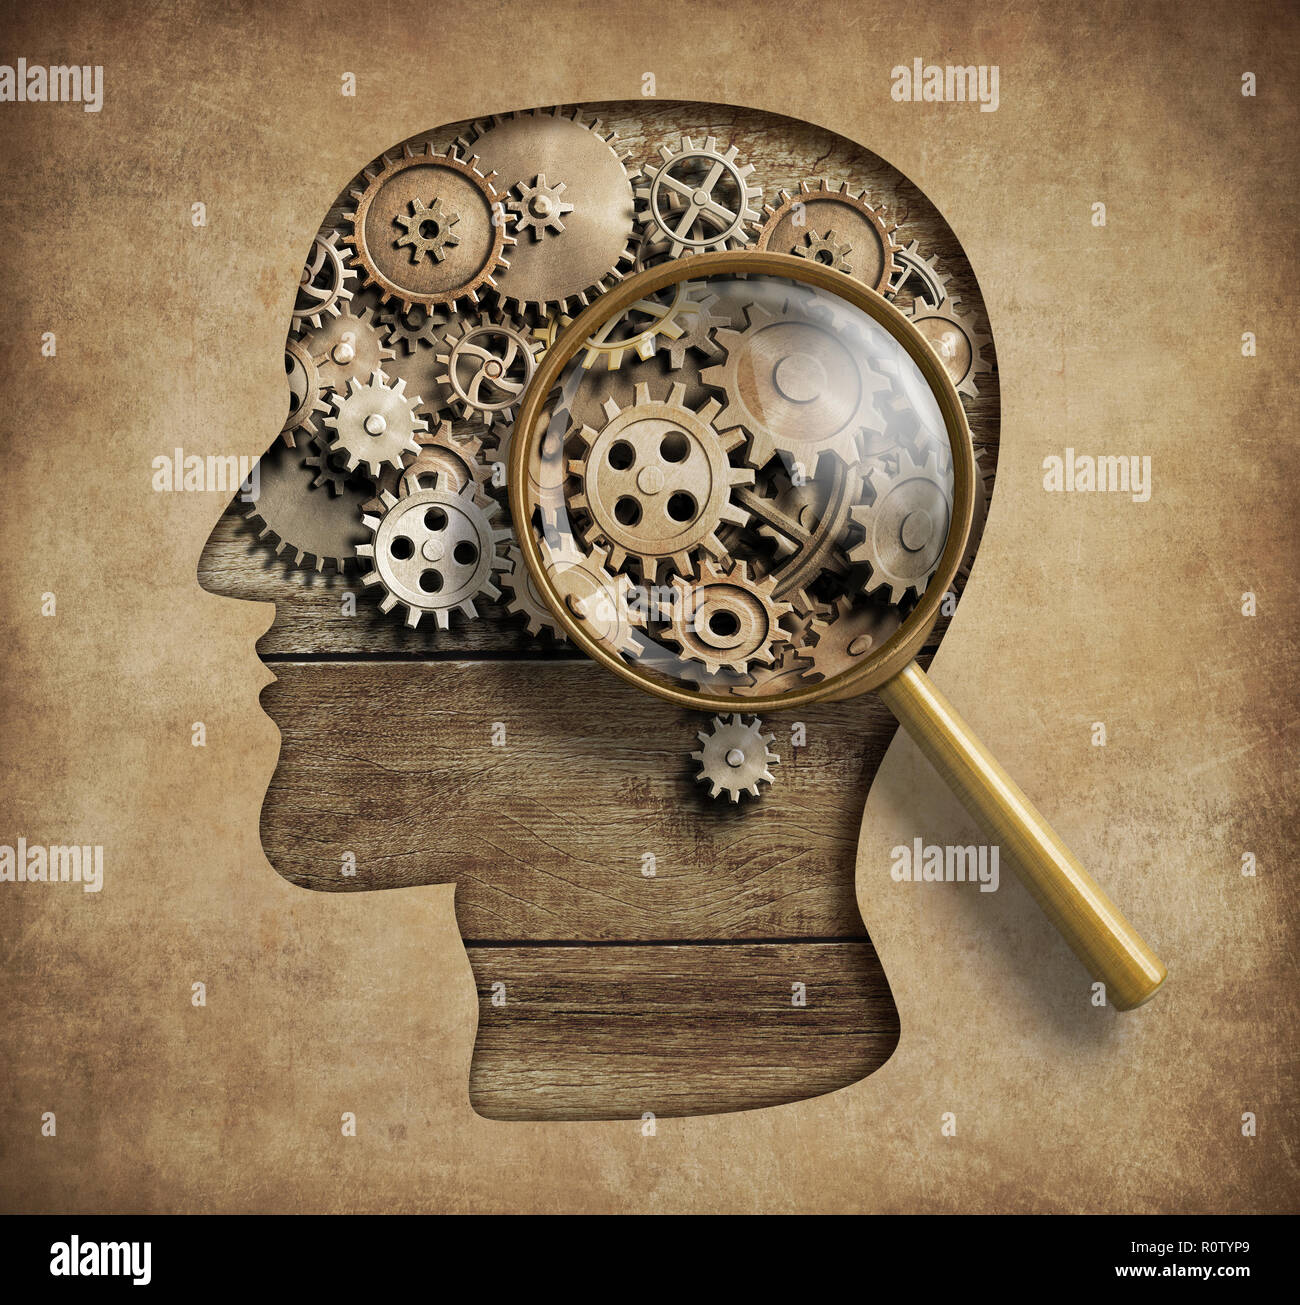 Psychology concept 3d illustration - Stock Image